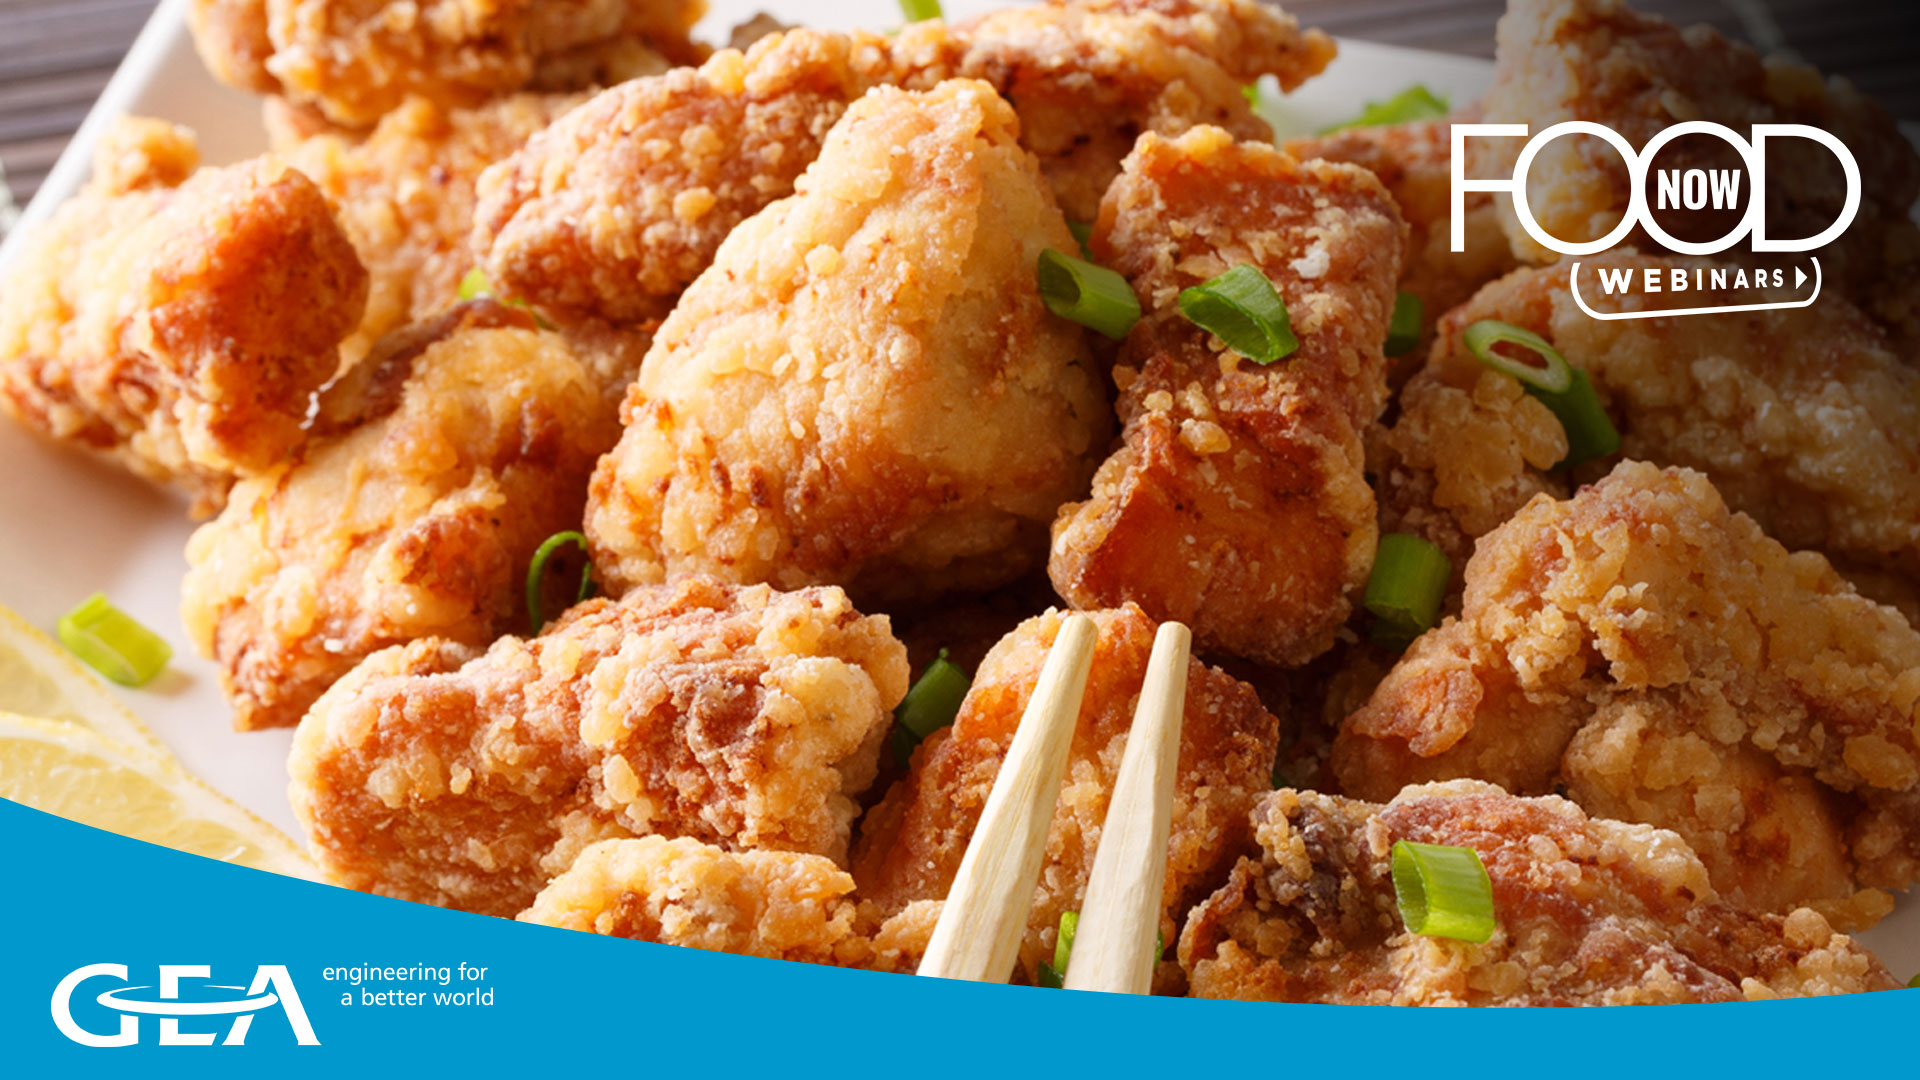 GEA Food Now webinar - How to produce Asian style Karaage the industrial way